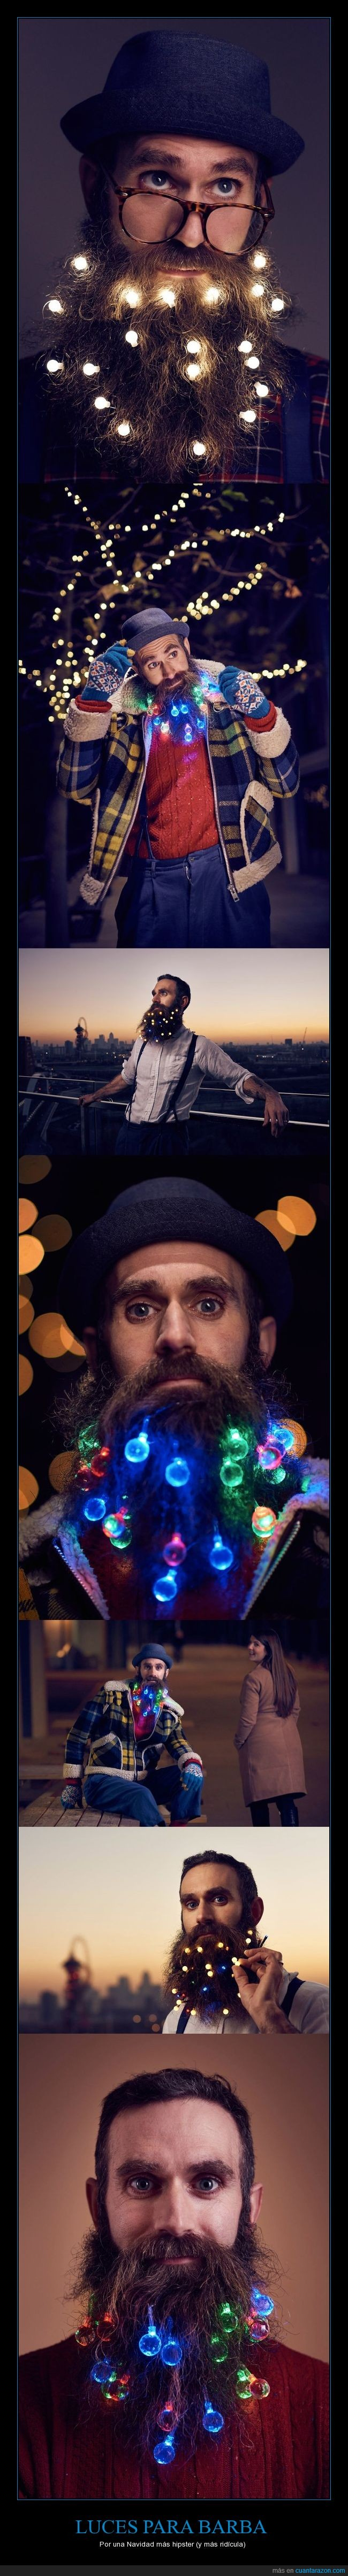 barbas,hipsters,luces,navidad